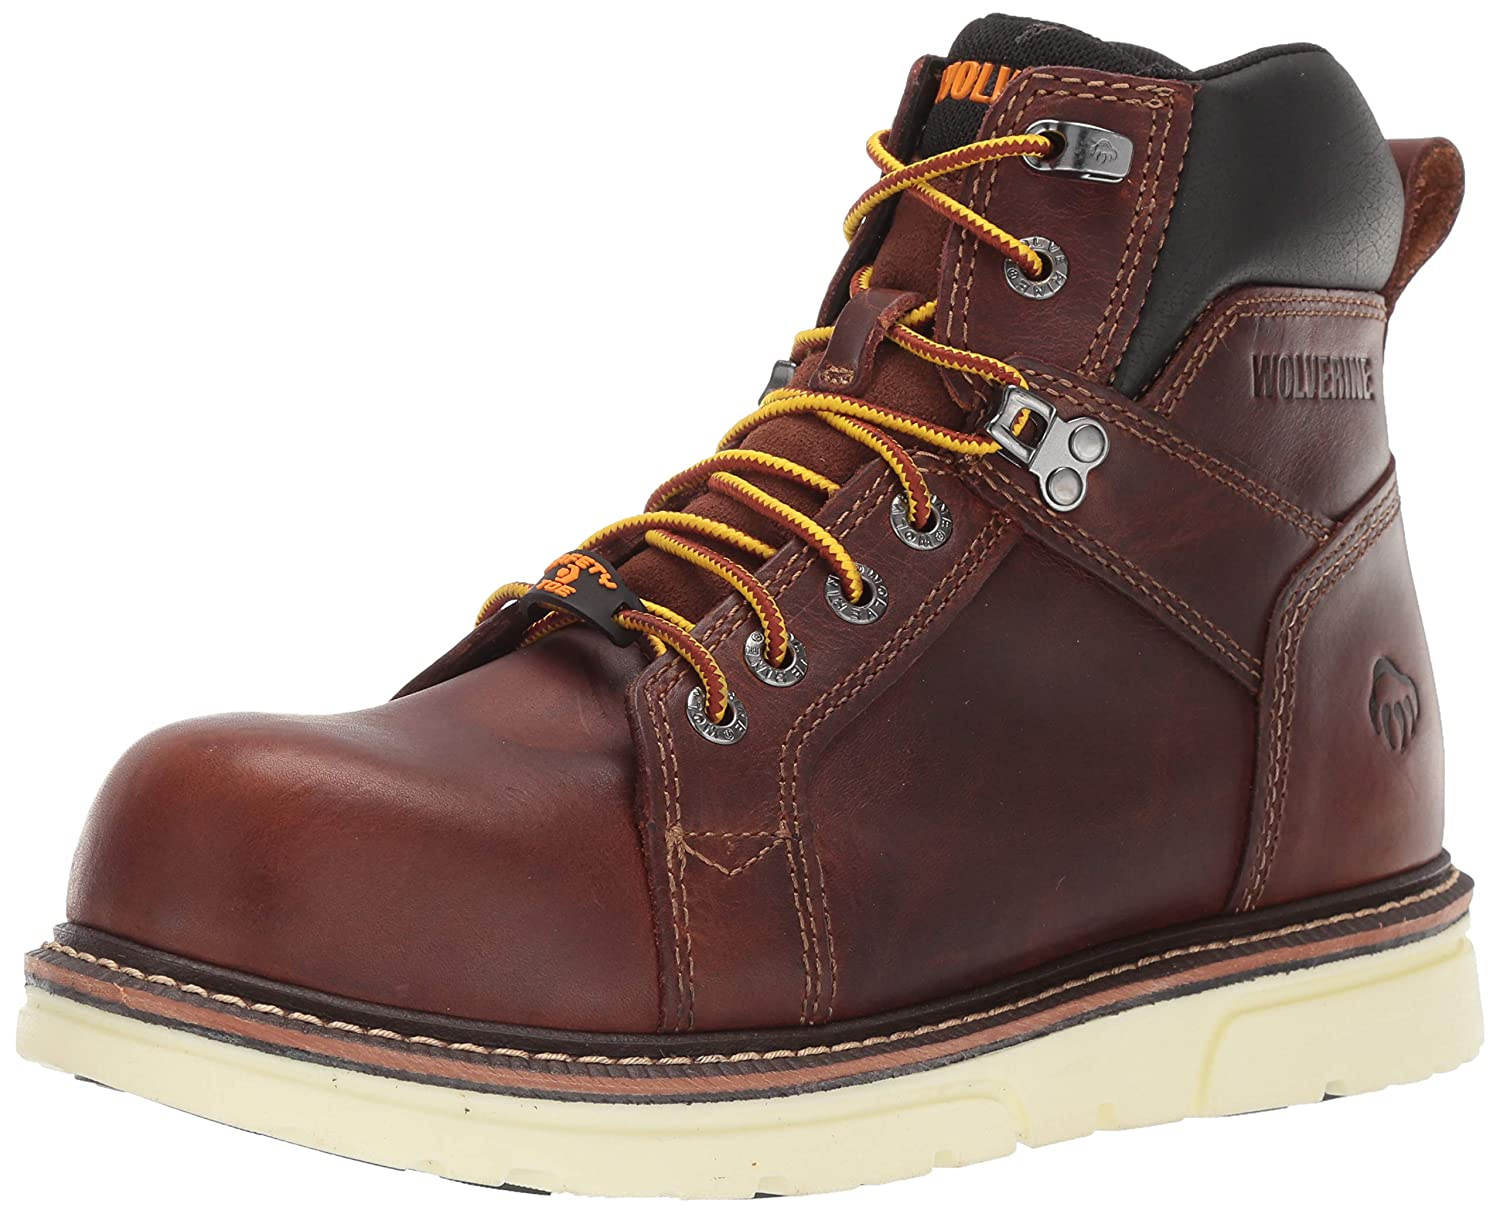 Brown 648 Wolverine Mens I-90 DuraShocks Wedge 6  Industrial shoes